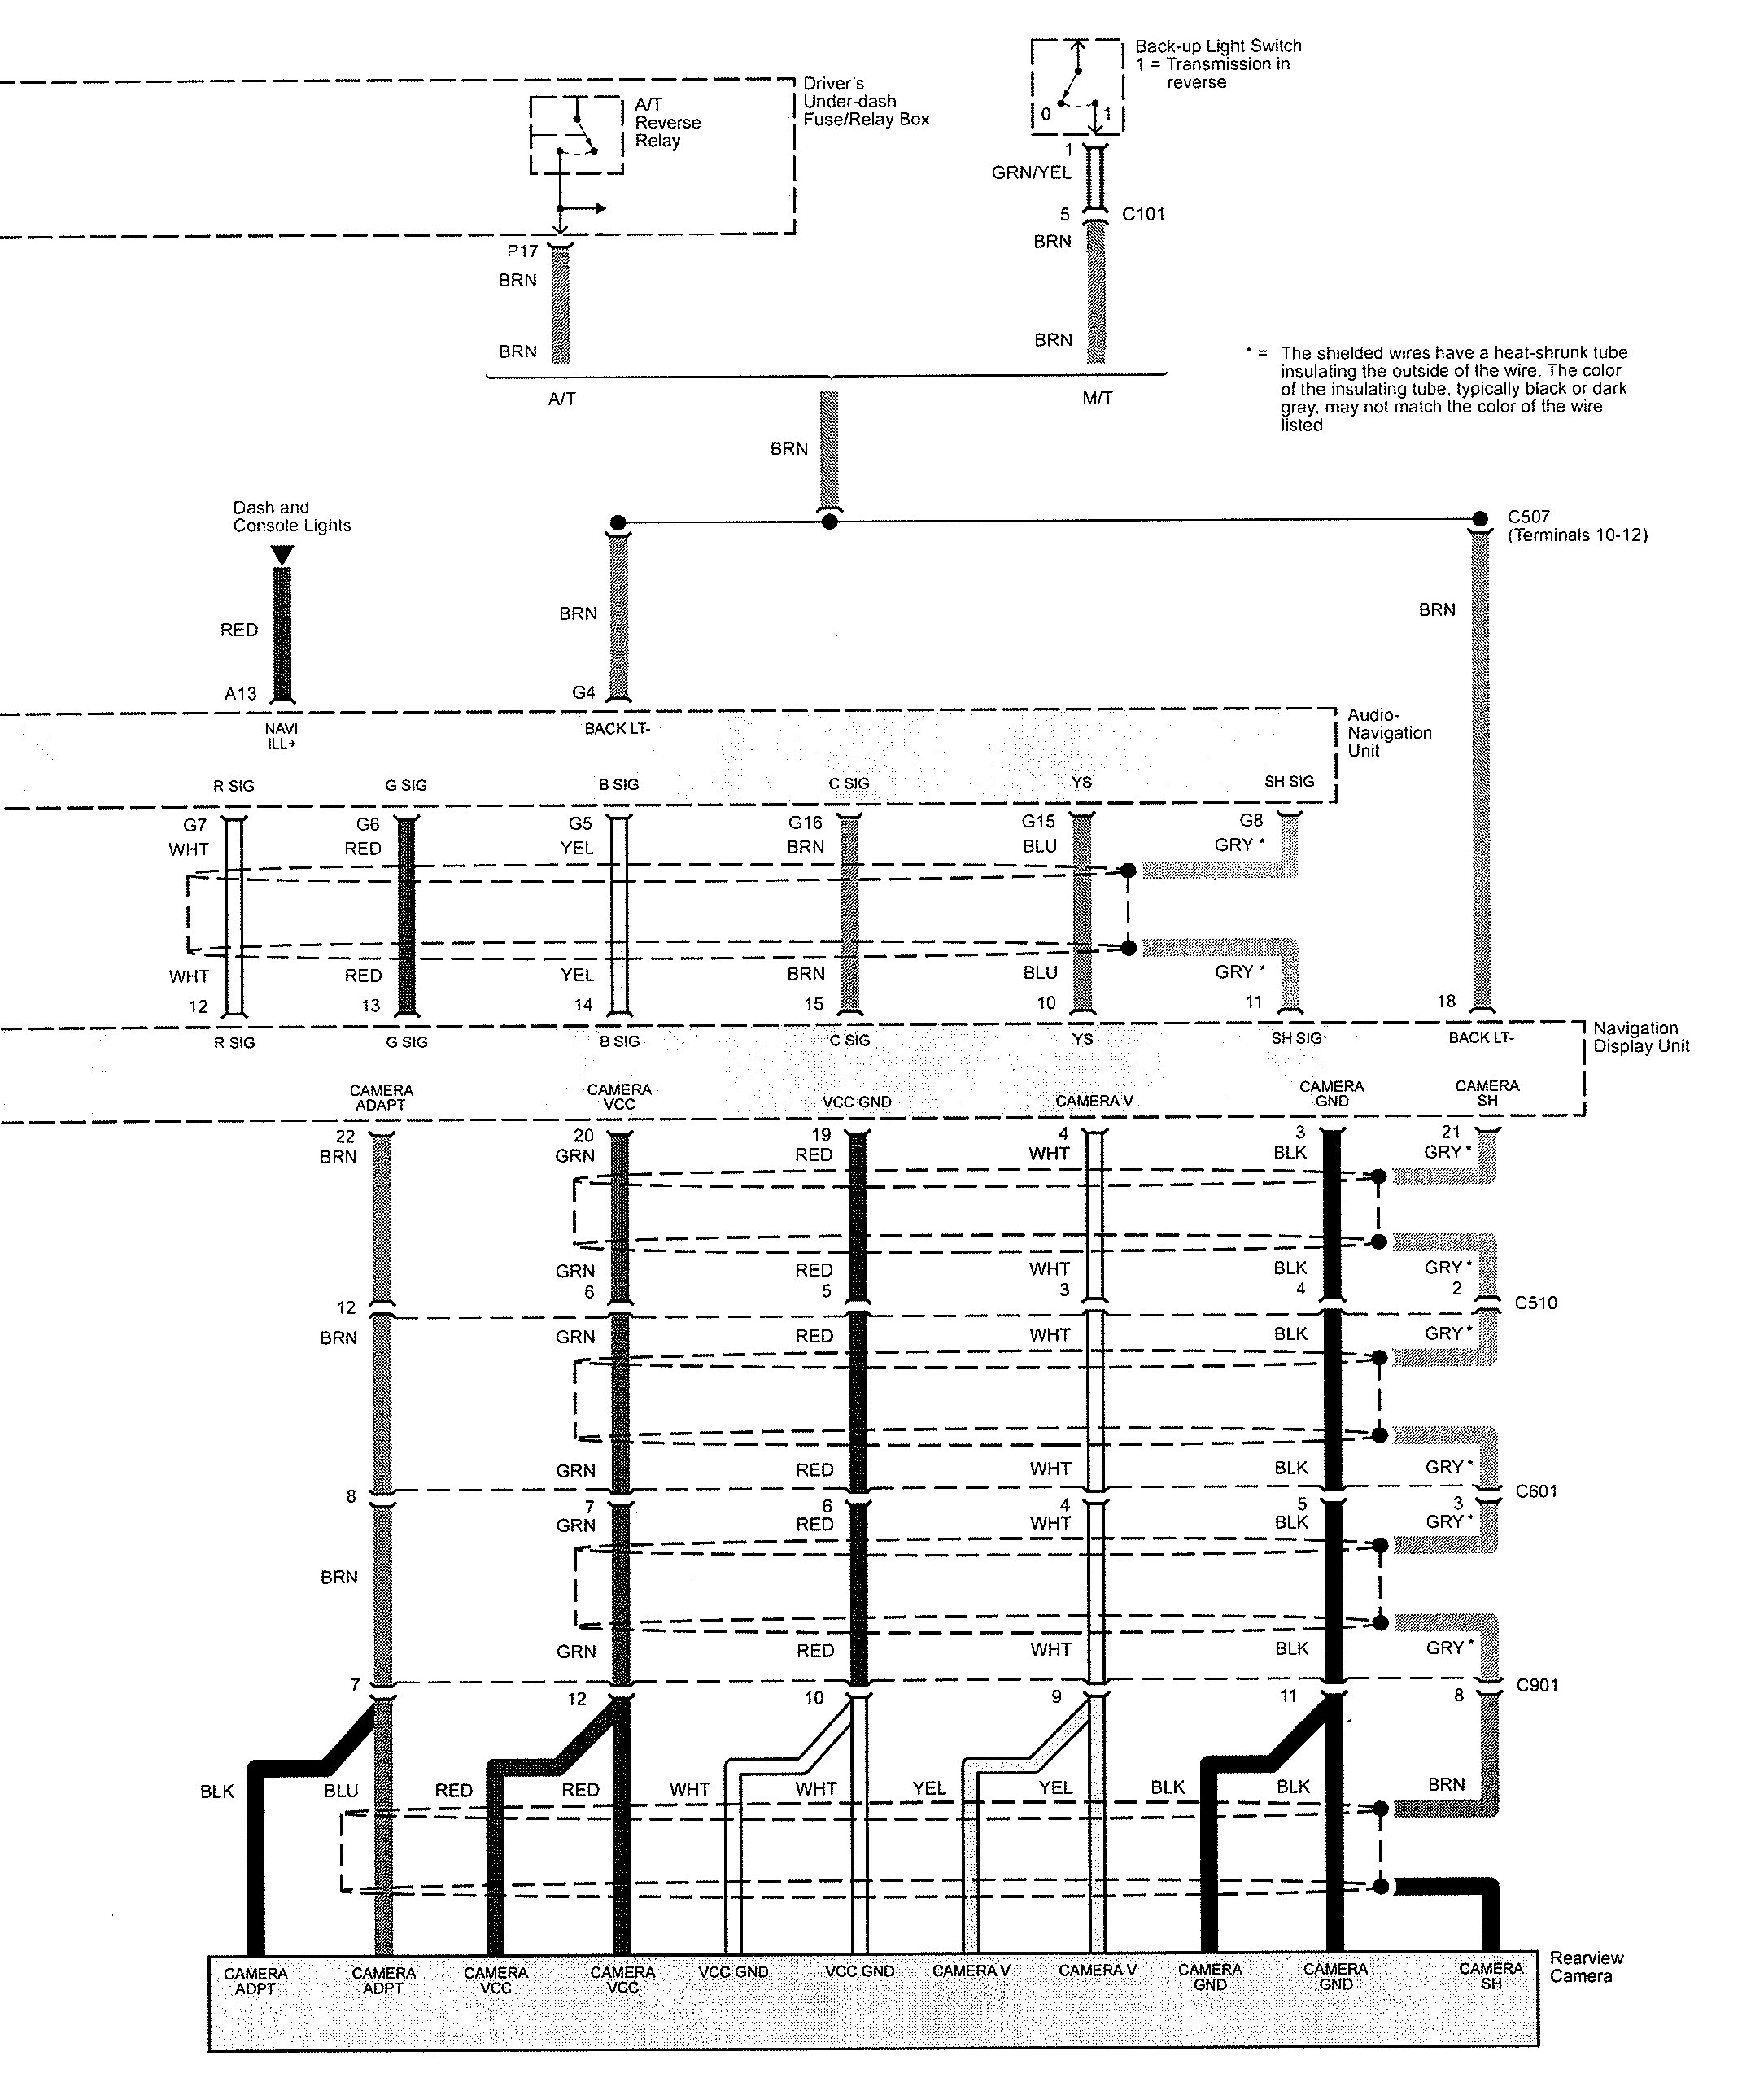 Radio Wiring Schematics For 93 Pontiac Bonneville : 49